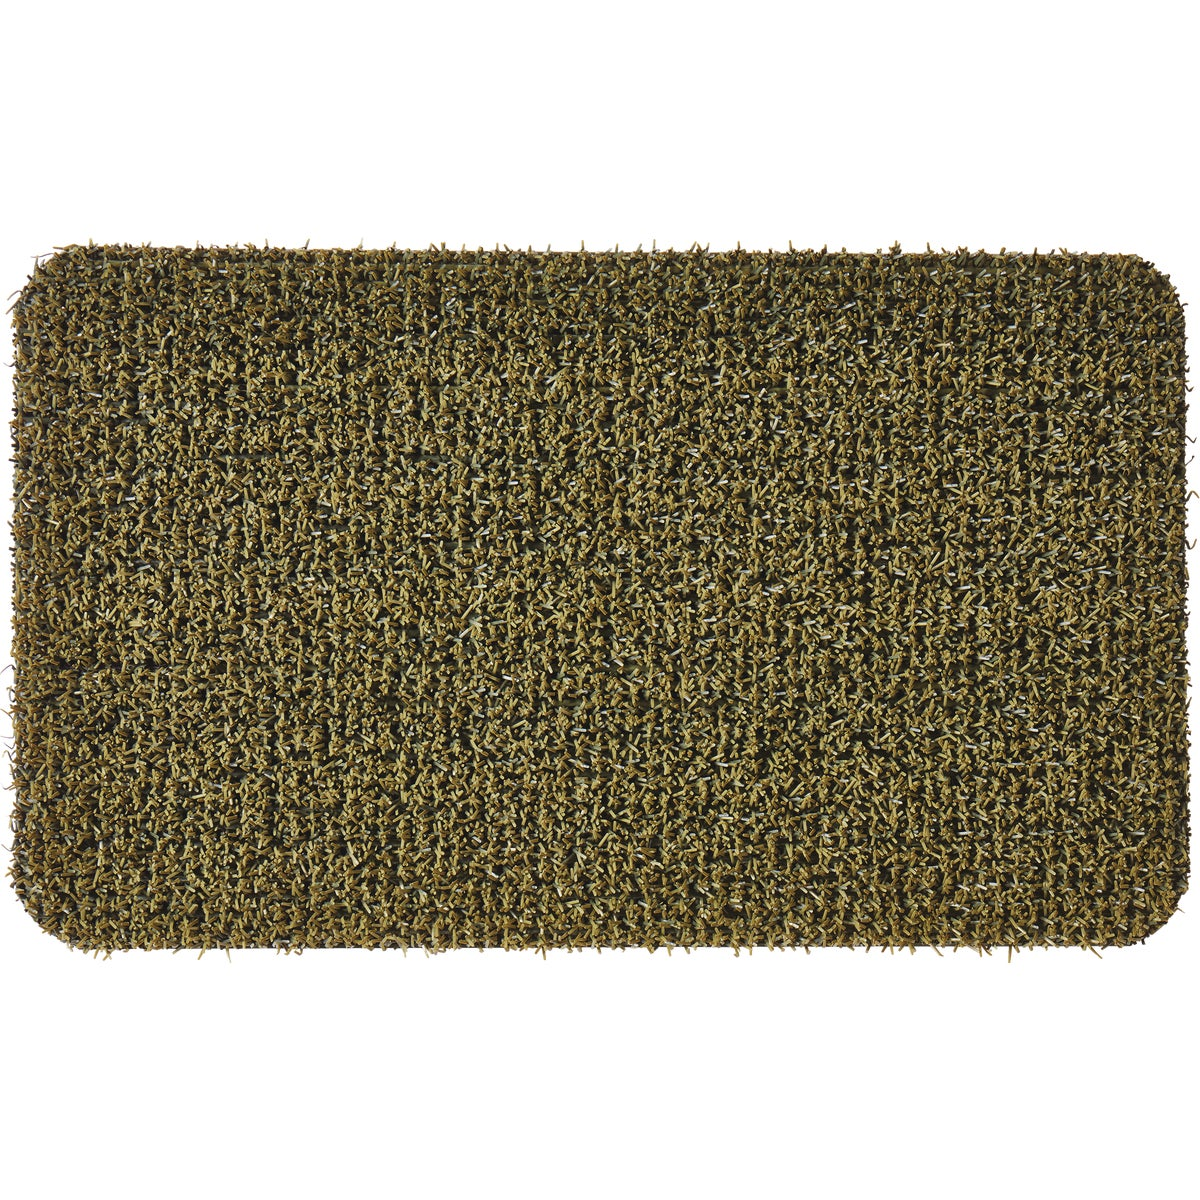 SPRUCE GREEN DOORMAT - 10370953 by Grassworx